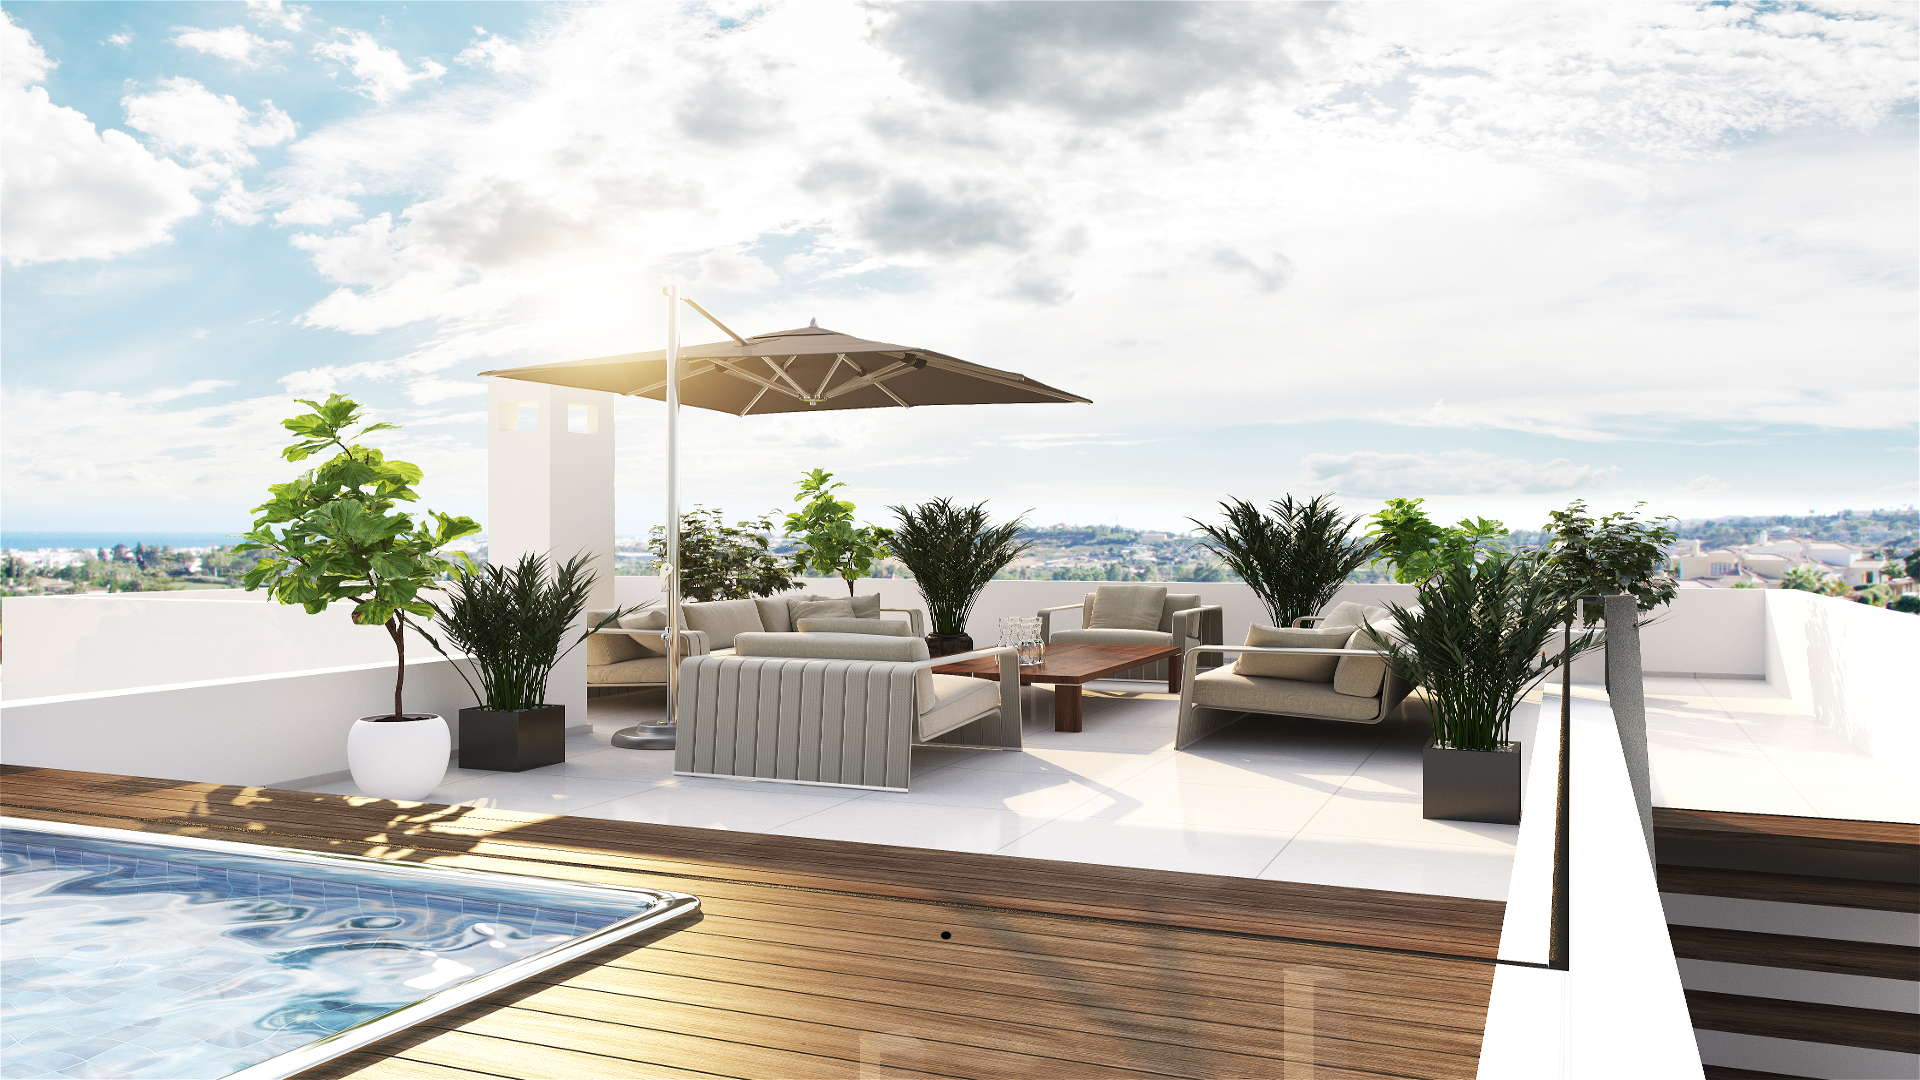 New villa in los olivos nueva andalucia marbella for sale for Modern quality homes